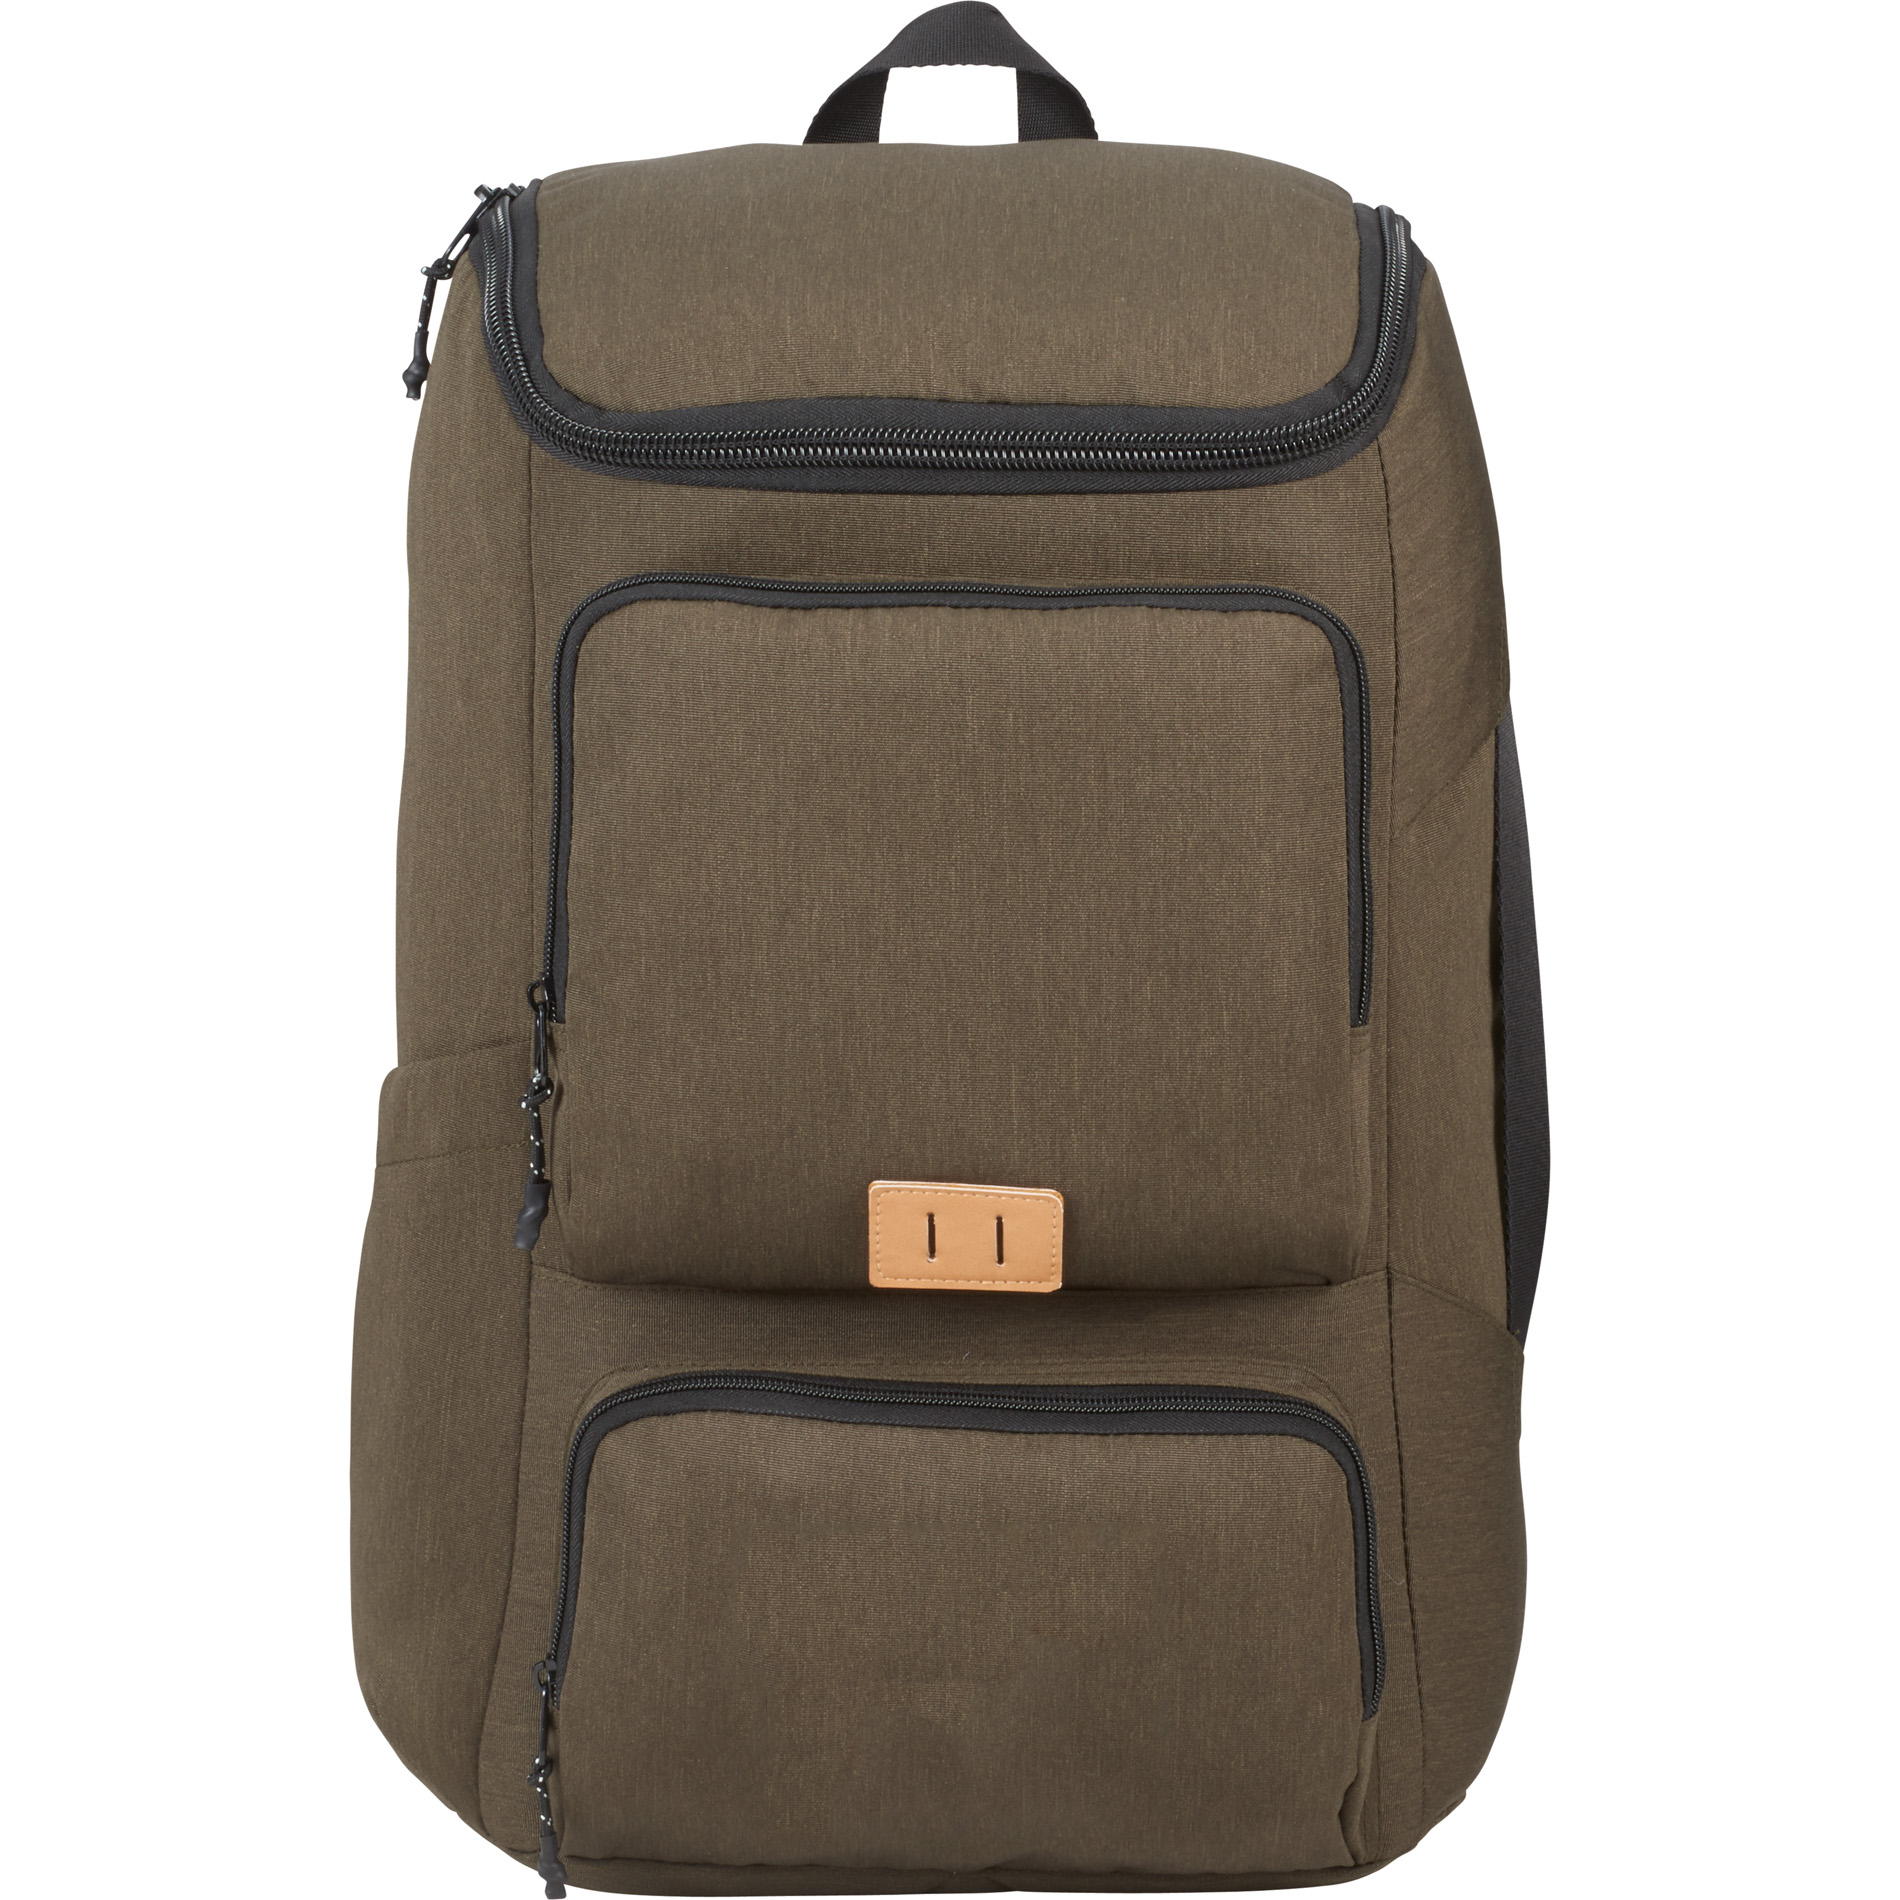 "LEEDS 3850-04 - Trails 15"" Computer Backpack"